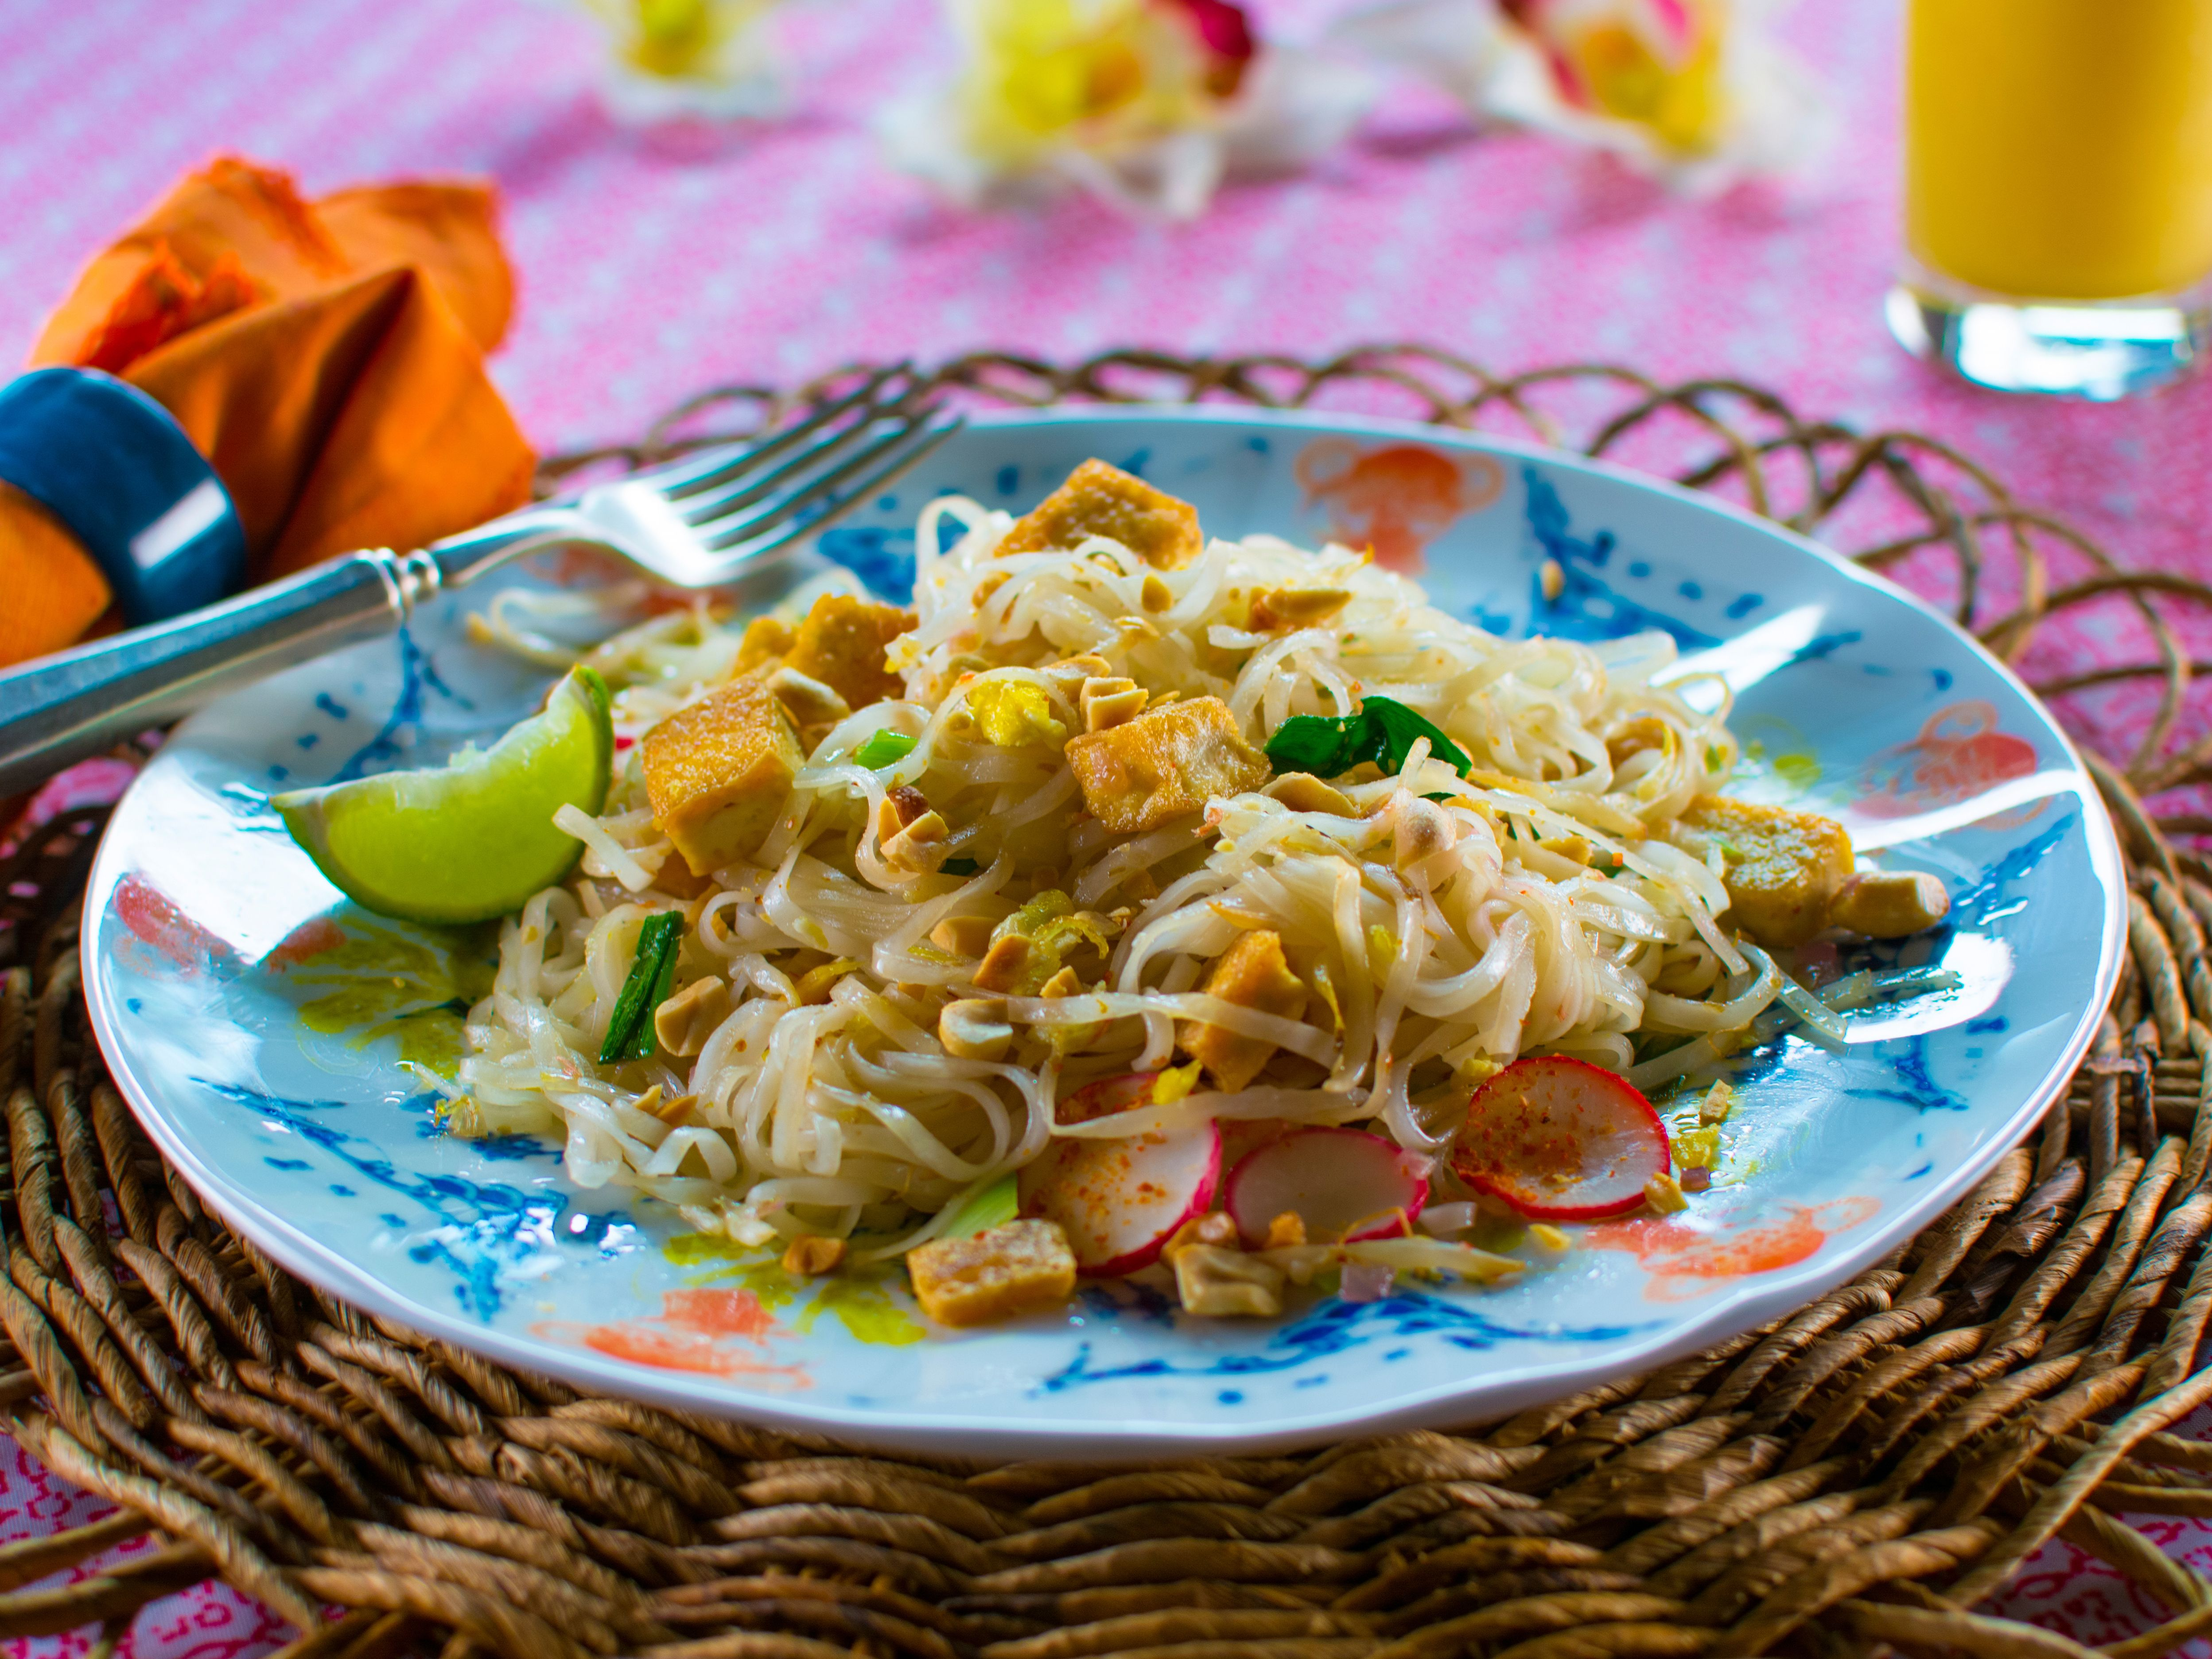 Pad thai recipe trisha yearwood food network foodnetwork pad thai recipe trisha yearwood food network foodnetwork forumfinder Image collections